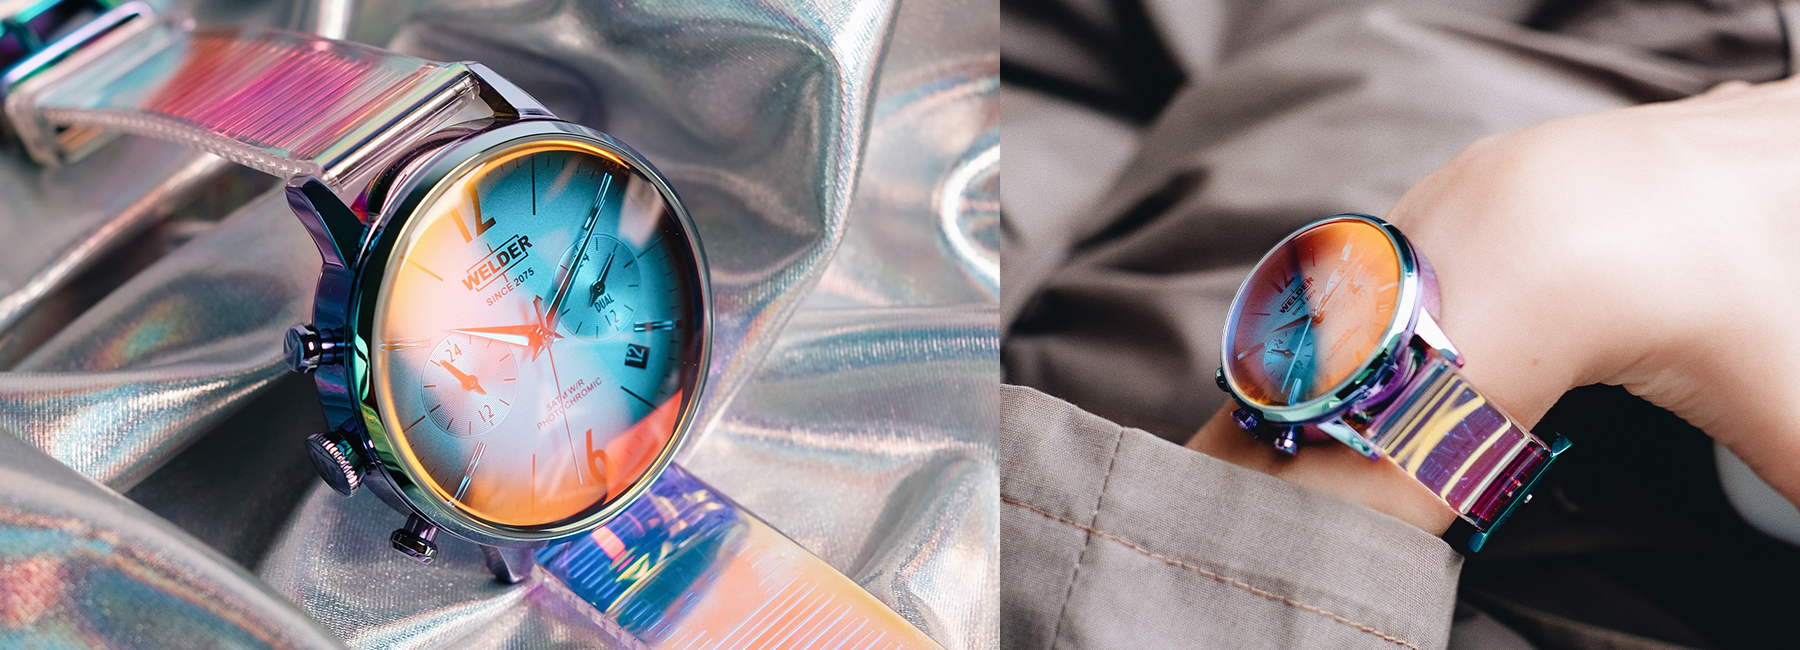 The Power of the Future is on the Wrist with Welder Moody Hologram